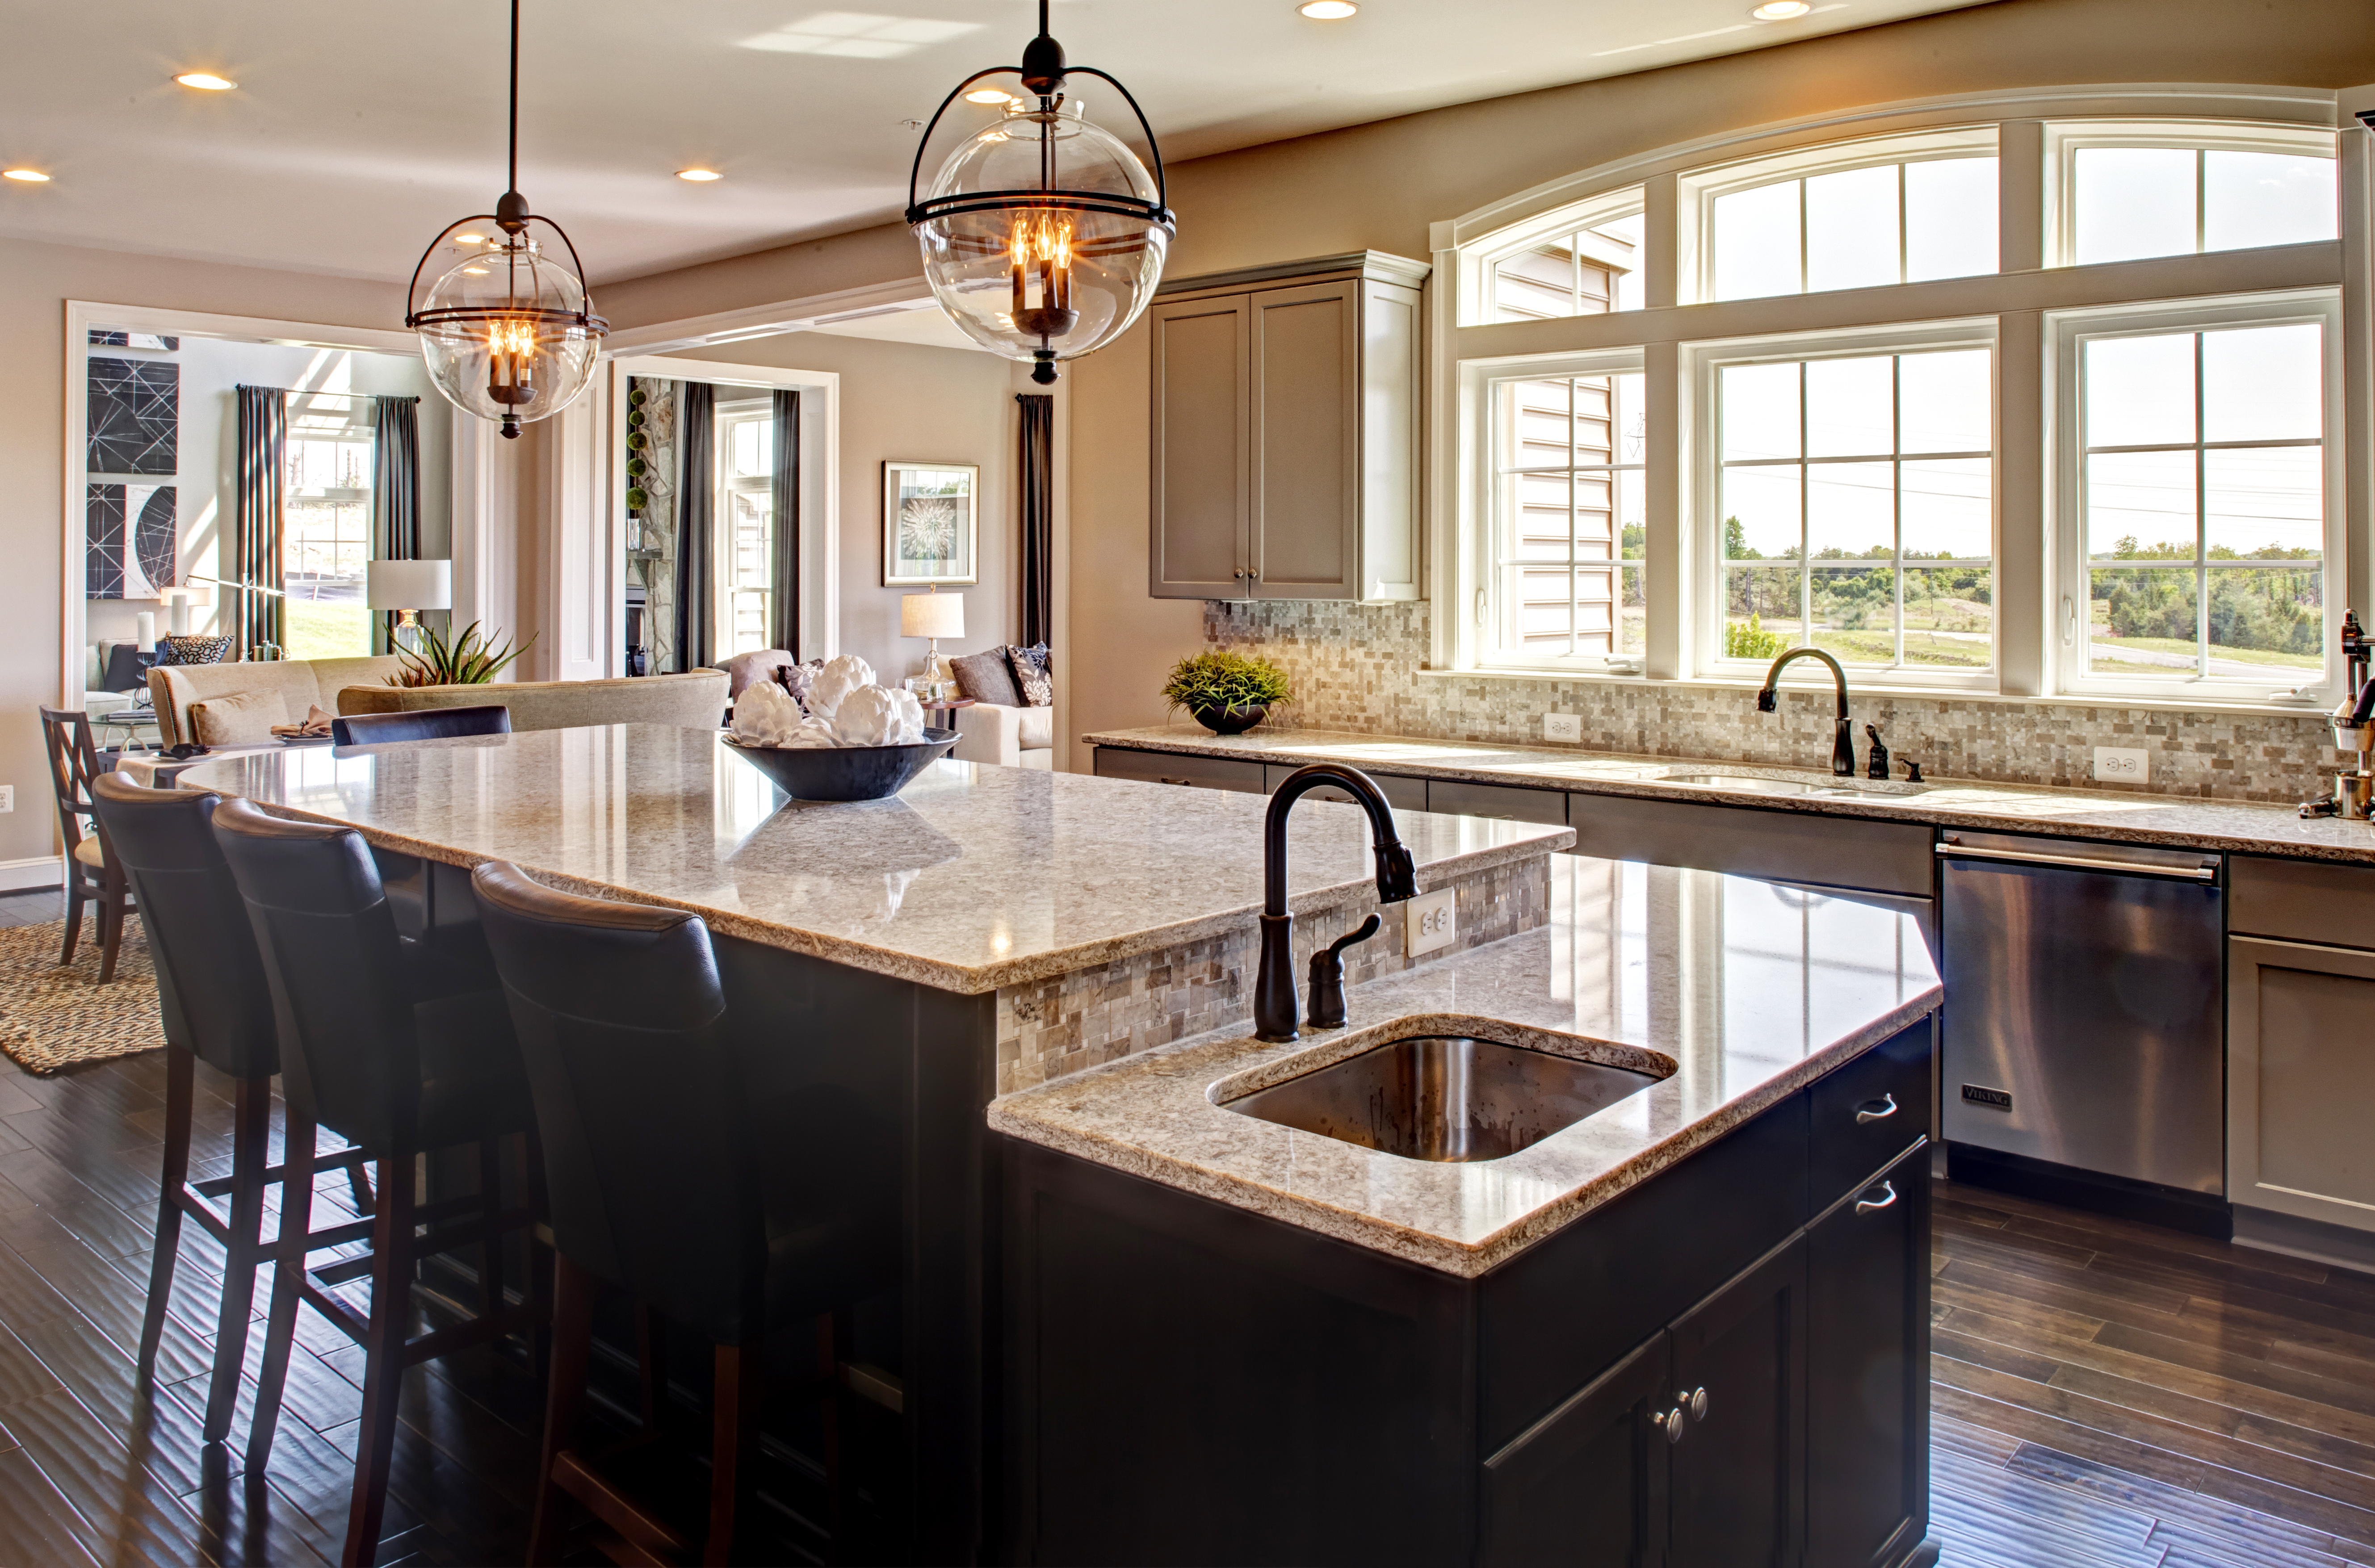 Amateur chefs will find much to love in the designer gourmet kitchen that features stainless steel appliances, an oversized island, granite countertops, built-in cook range and double wall oven.